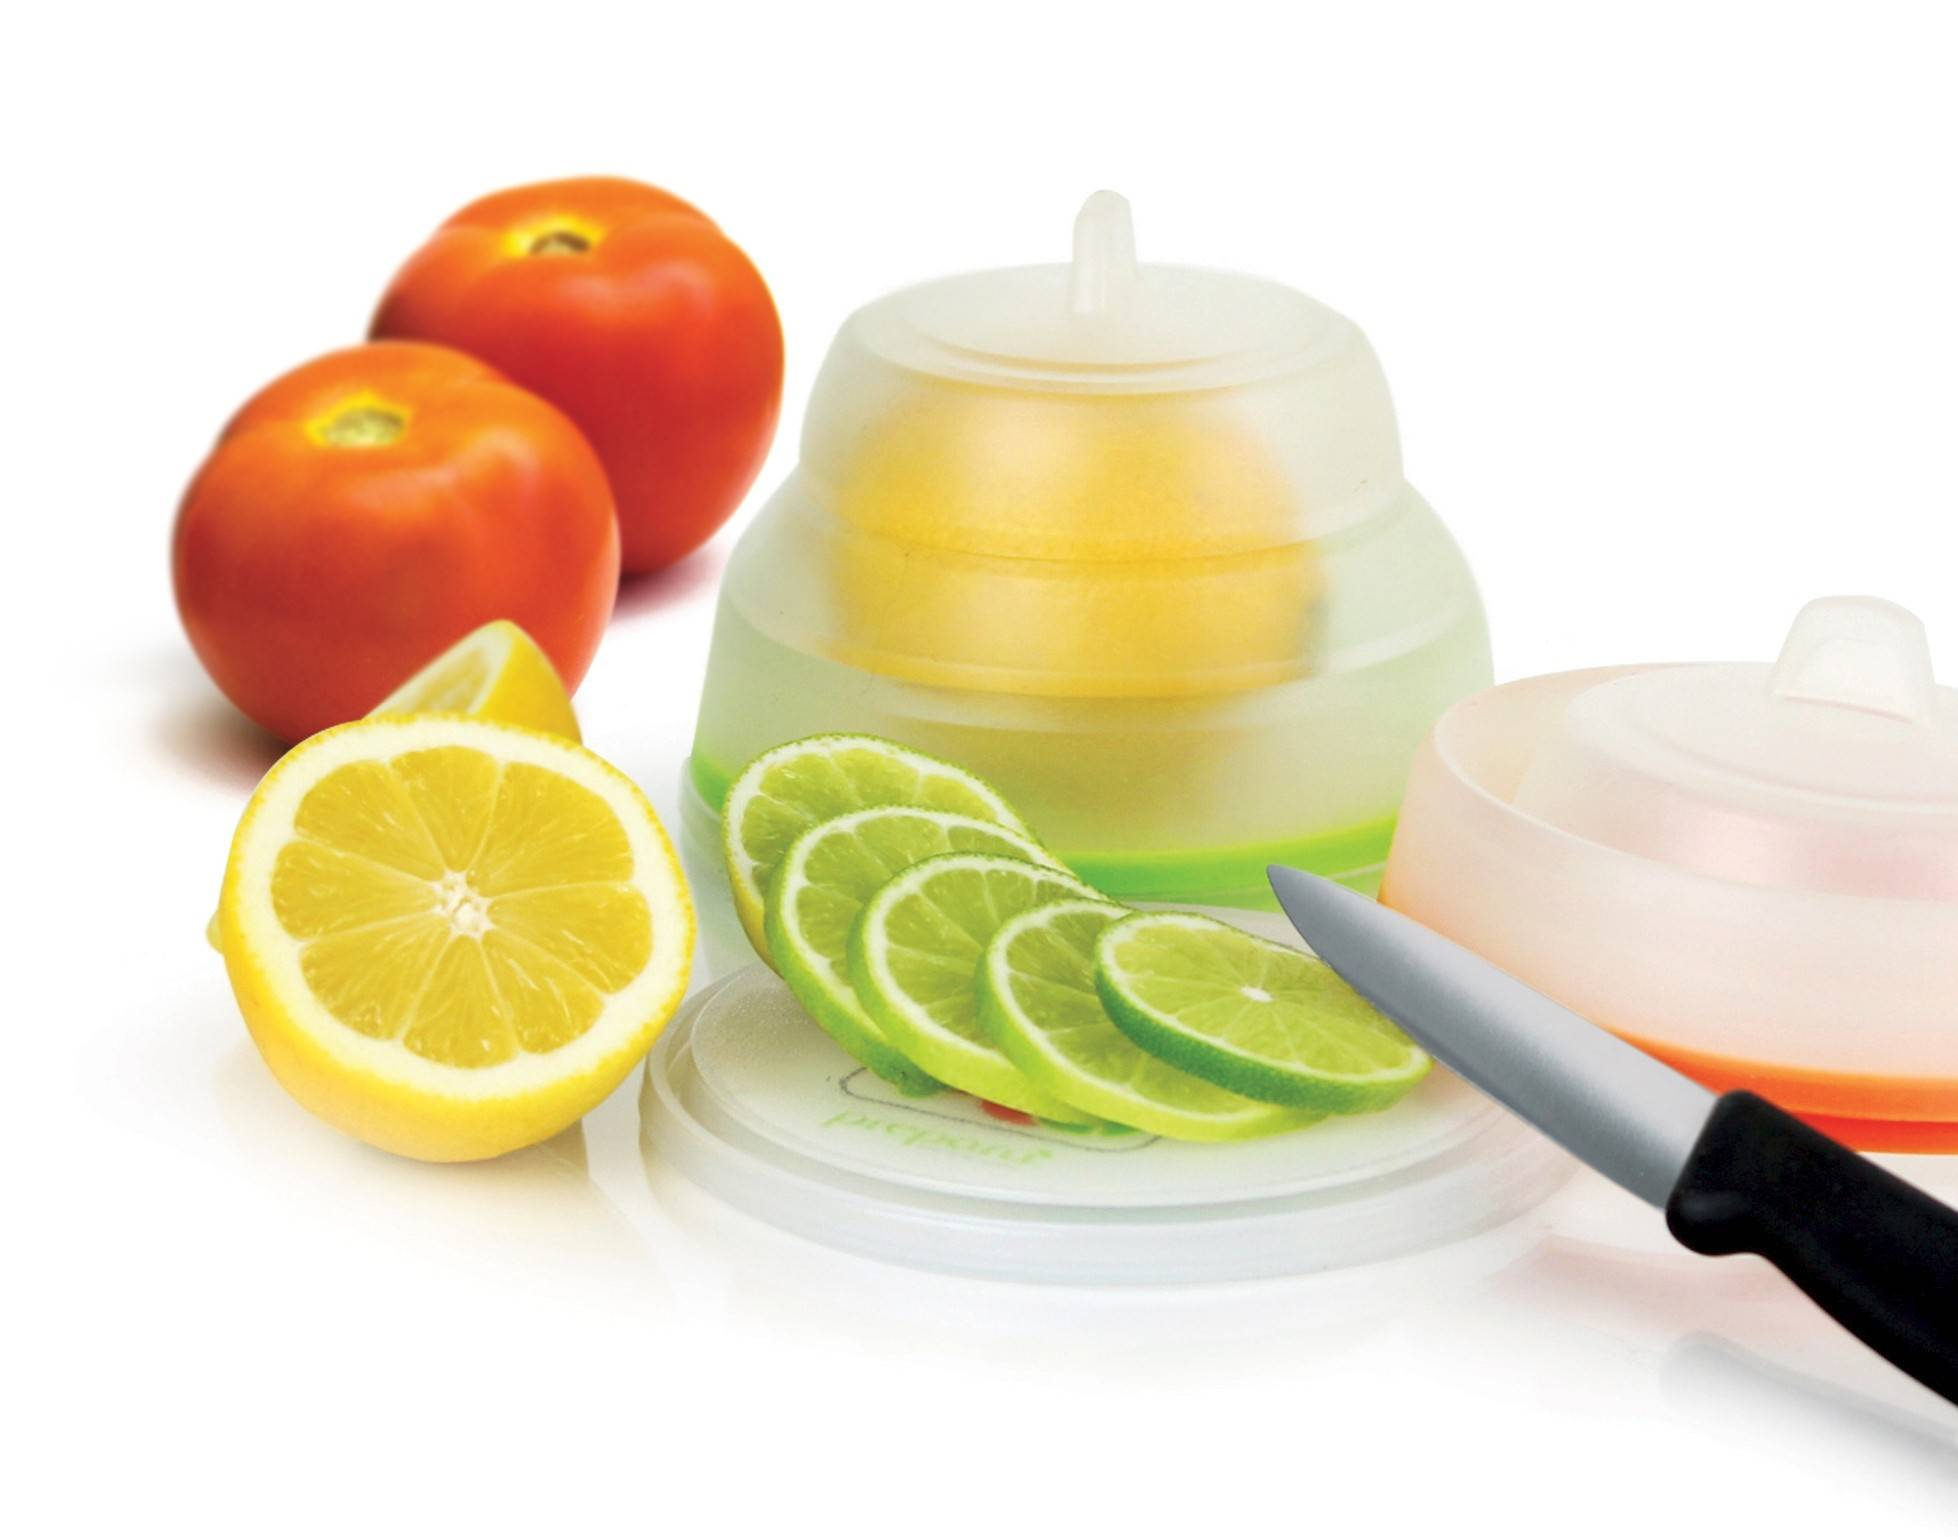 Lemon slices for iced tea and tomato wedges for salads stay fresh and unadulterated by other refrigerator odors with Prepara's Chop Savor. $14.99 for set of three. Available now.